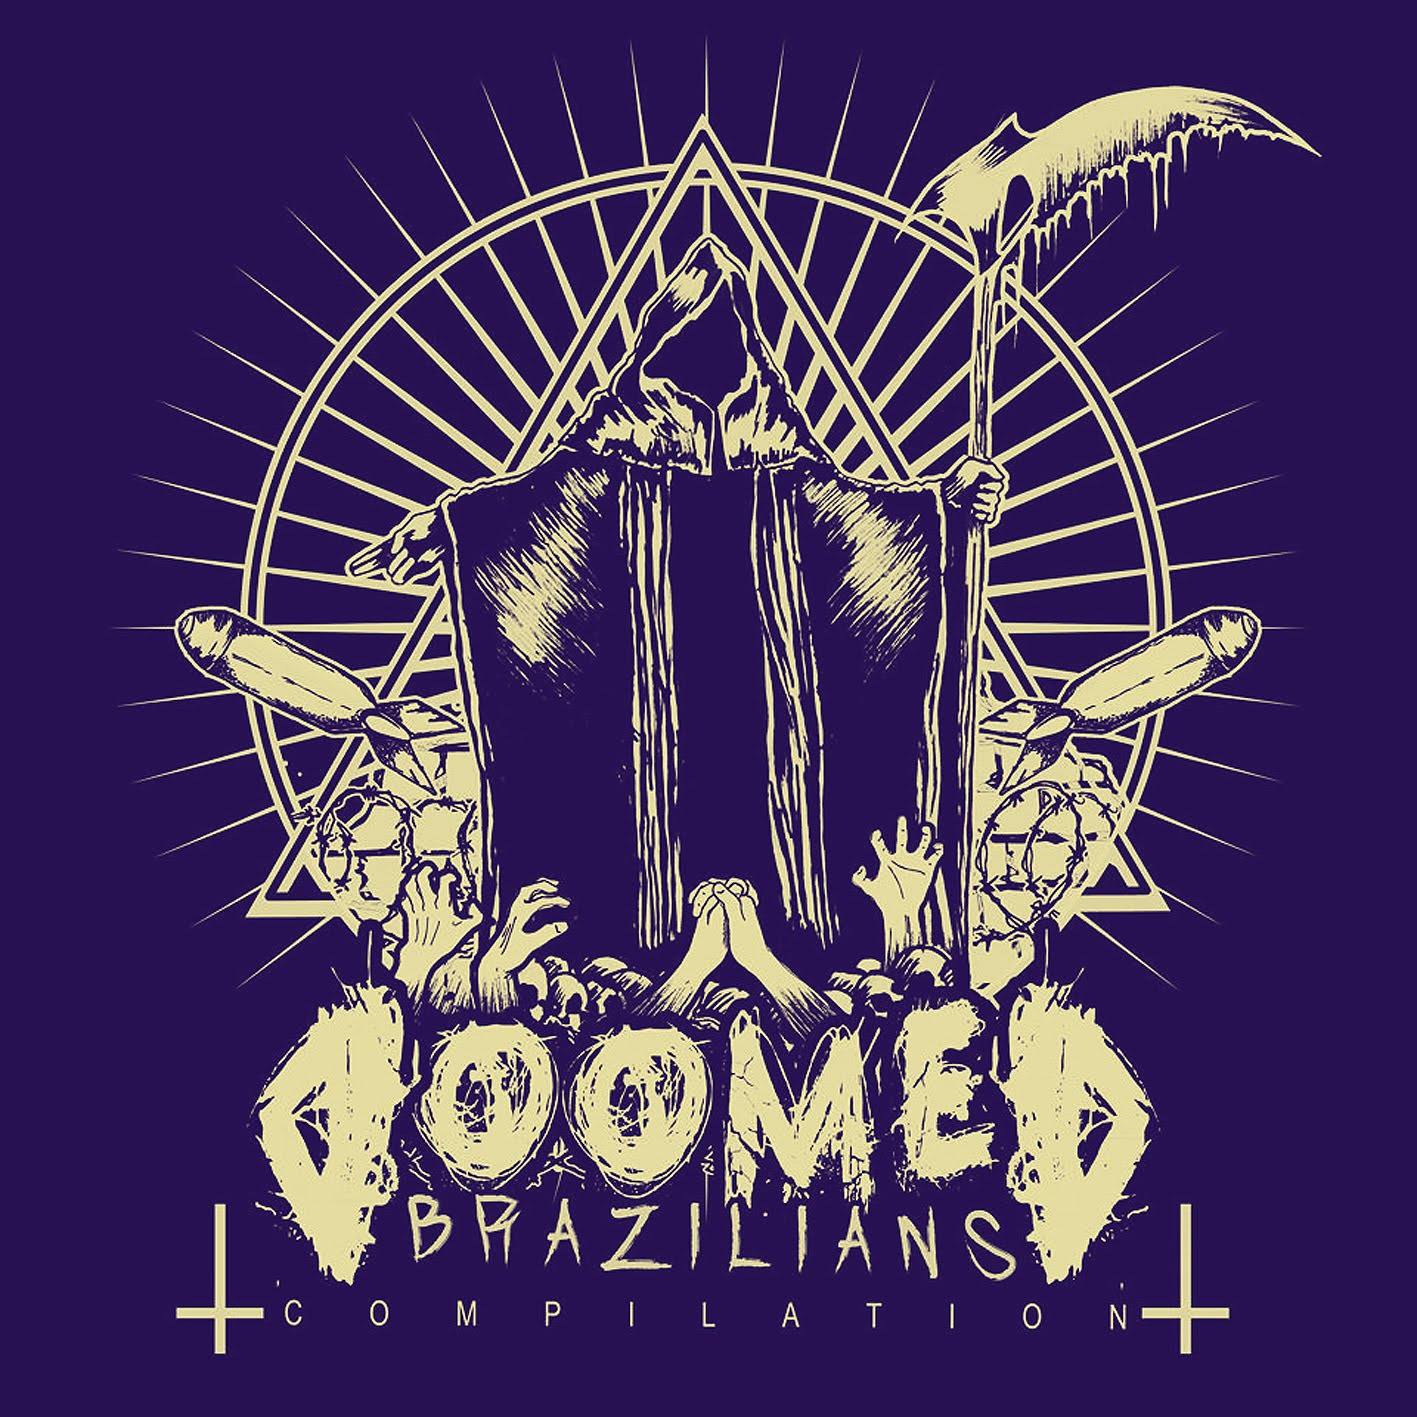 Doomed Brazilians Compilation I